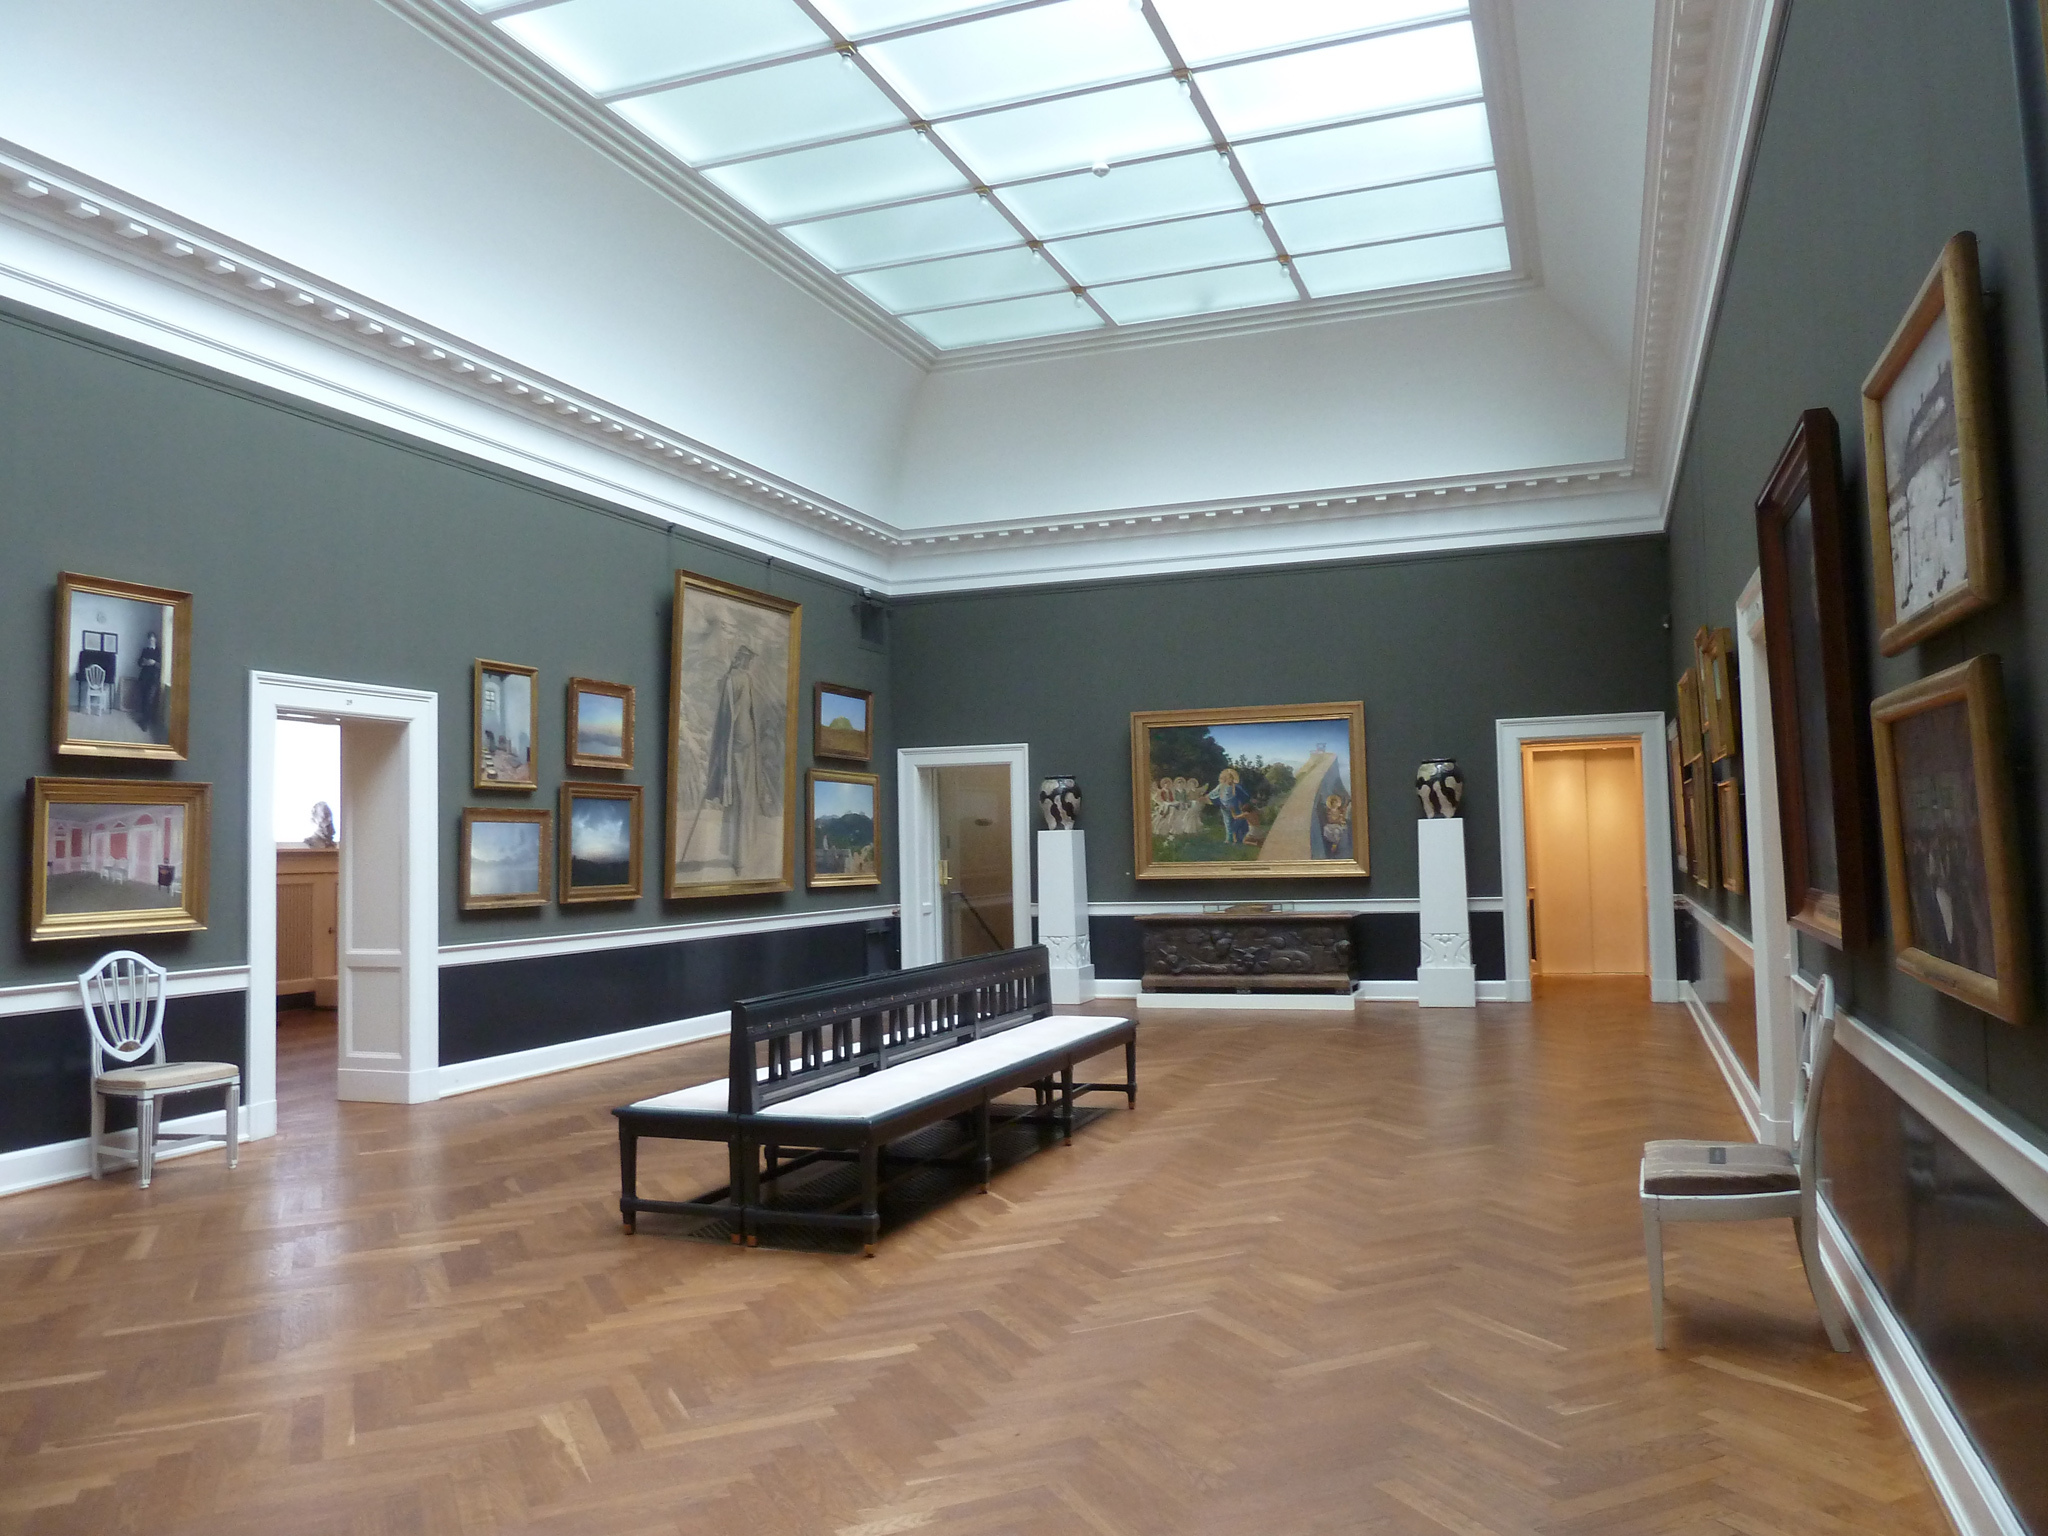 An exhibition room at the Hirschsprung Collection